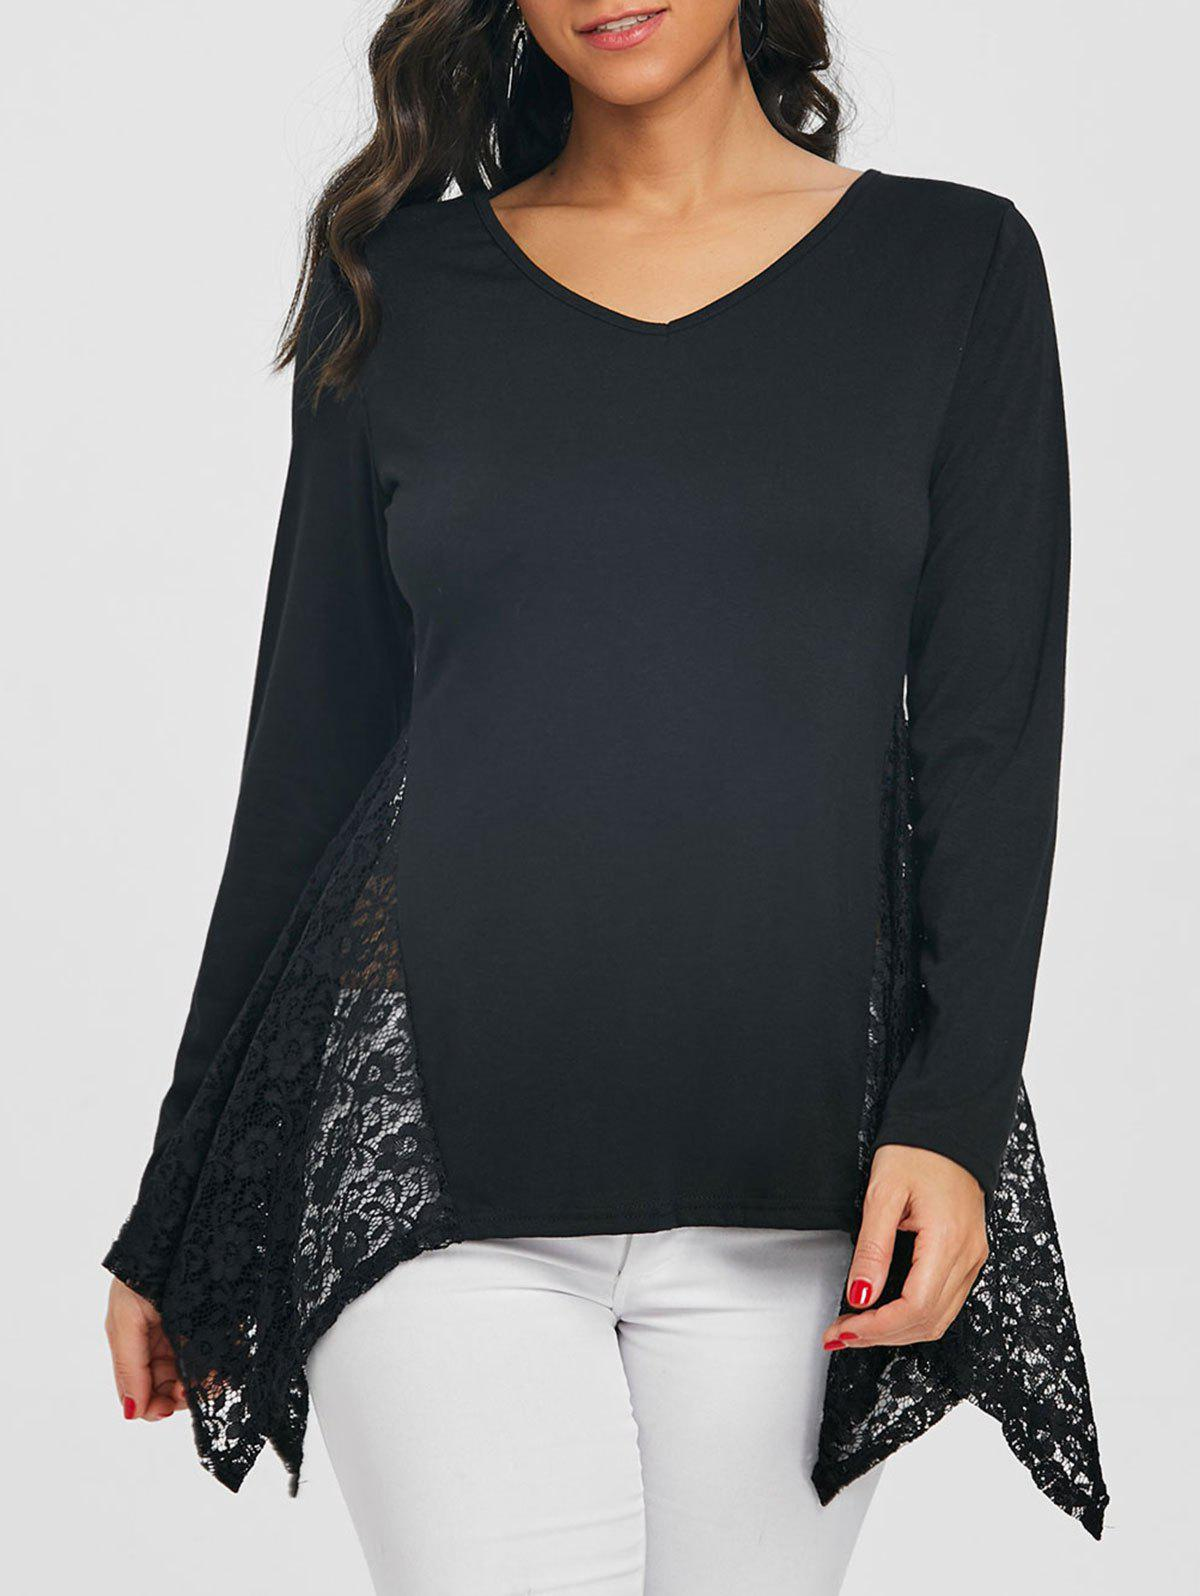 Asymmetric V Neck Lace Panel Tunic T-shirt bbk